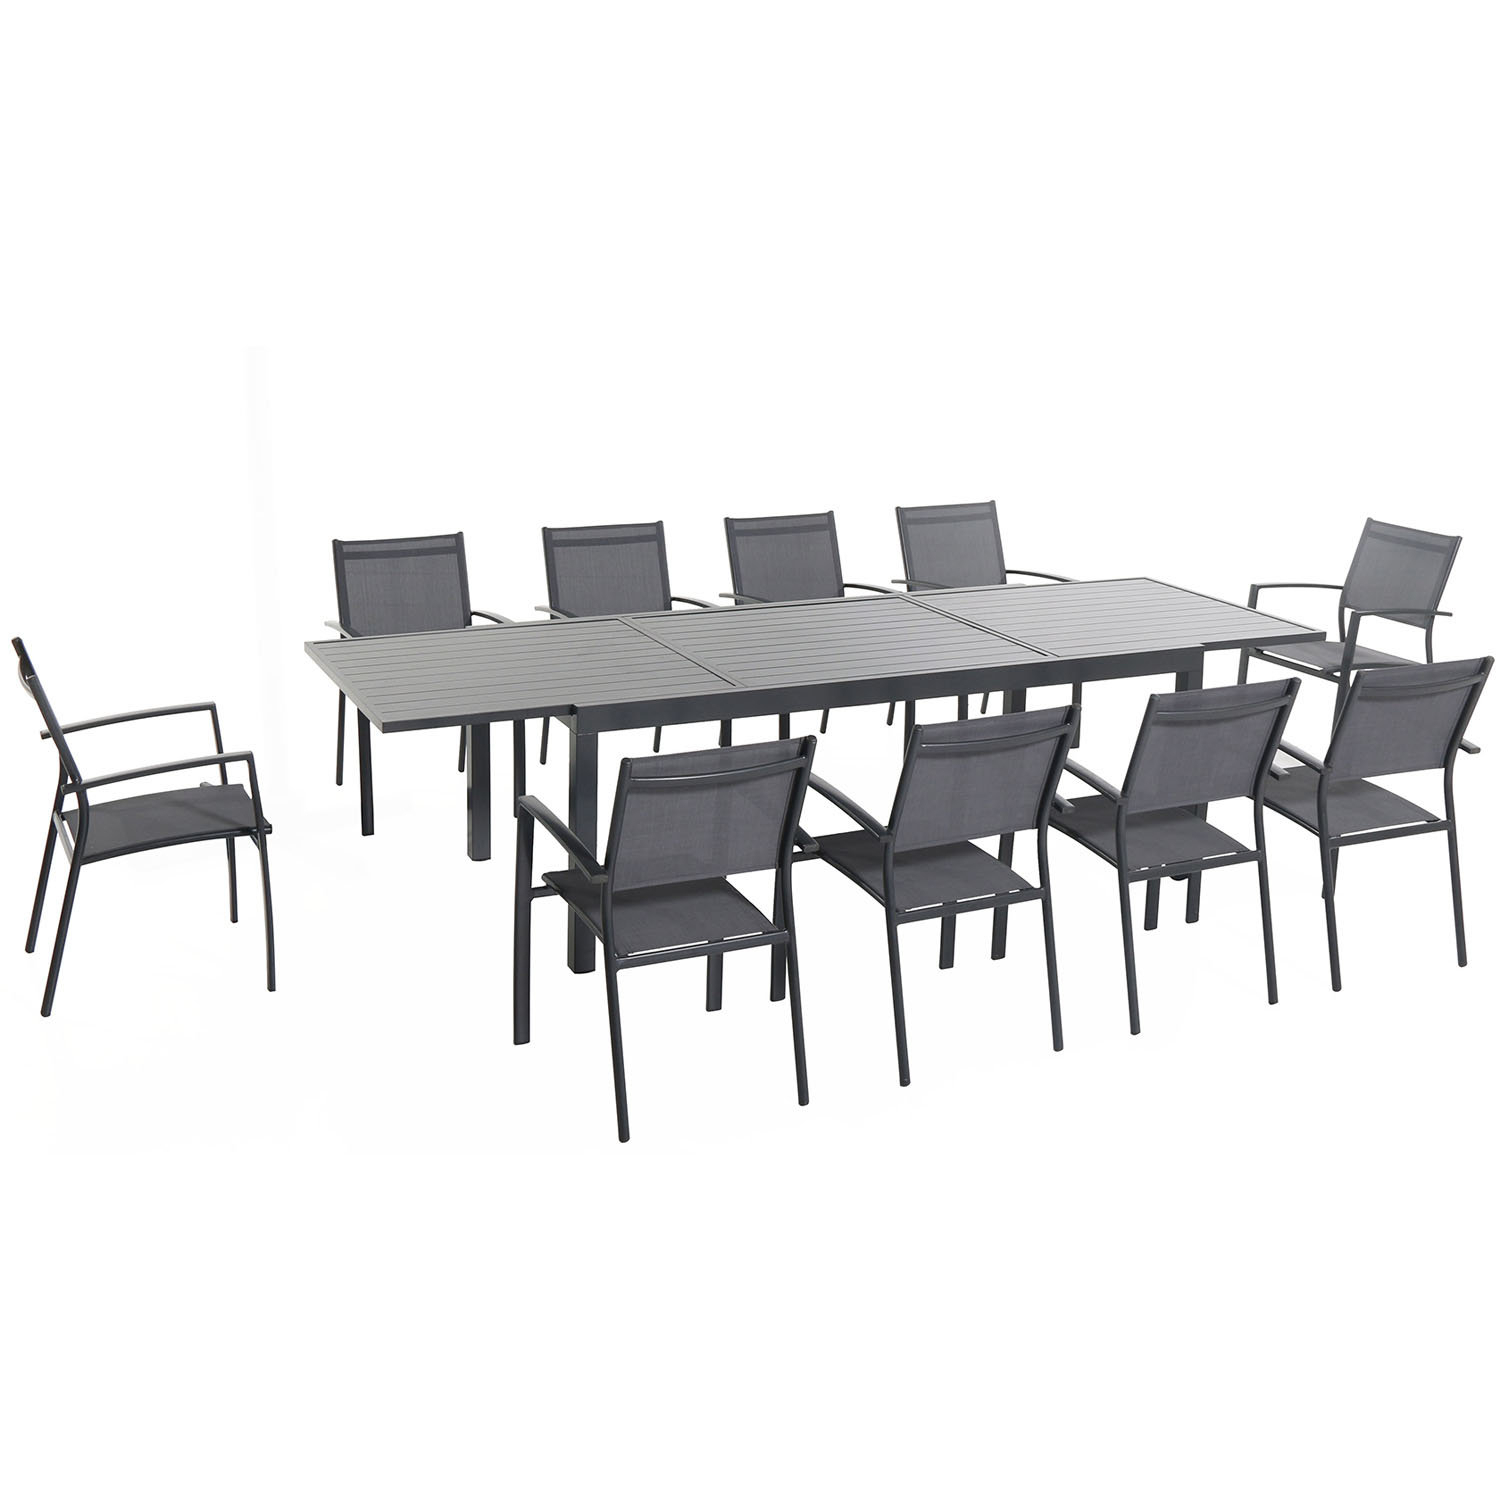 Rayleigh 11 Piece Dining Set Pertaining To Current Smyrna 3 Piece Dining Sets (View 20 of 20)